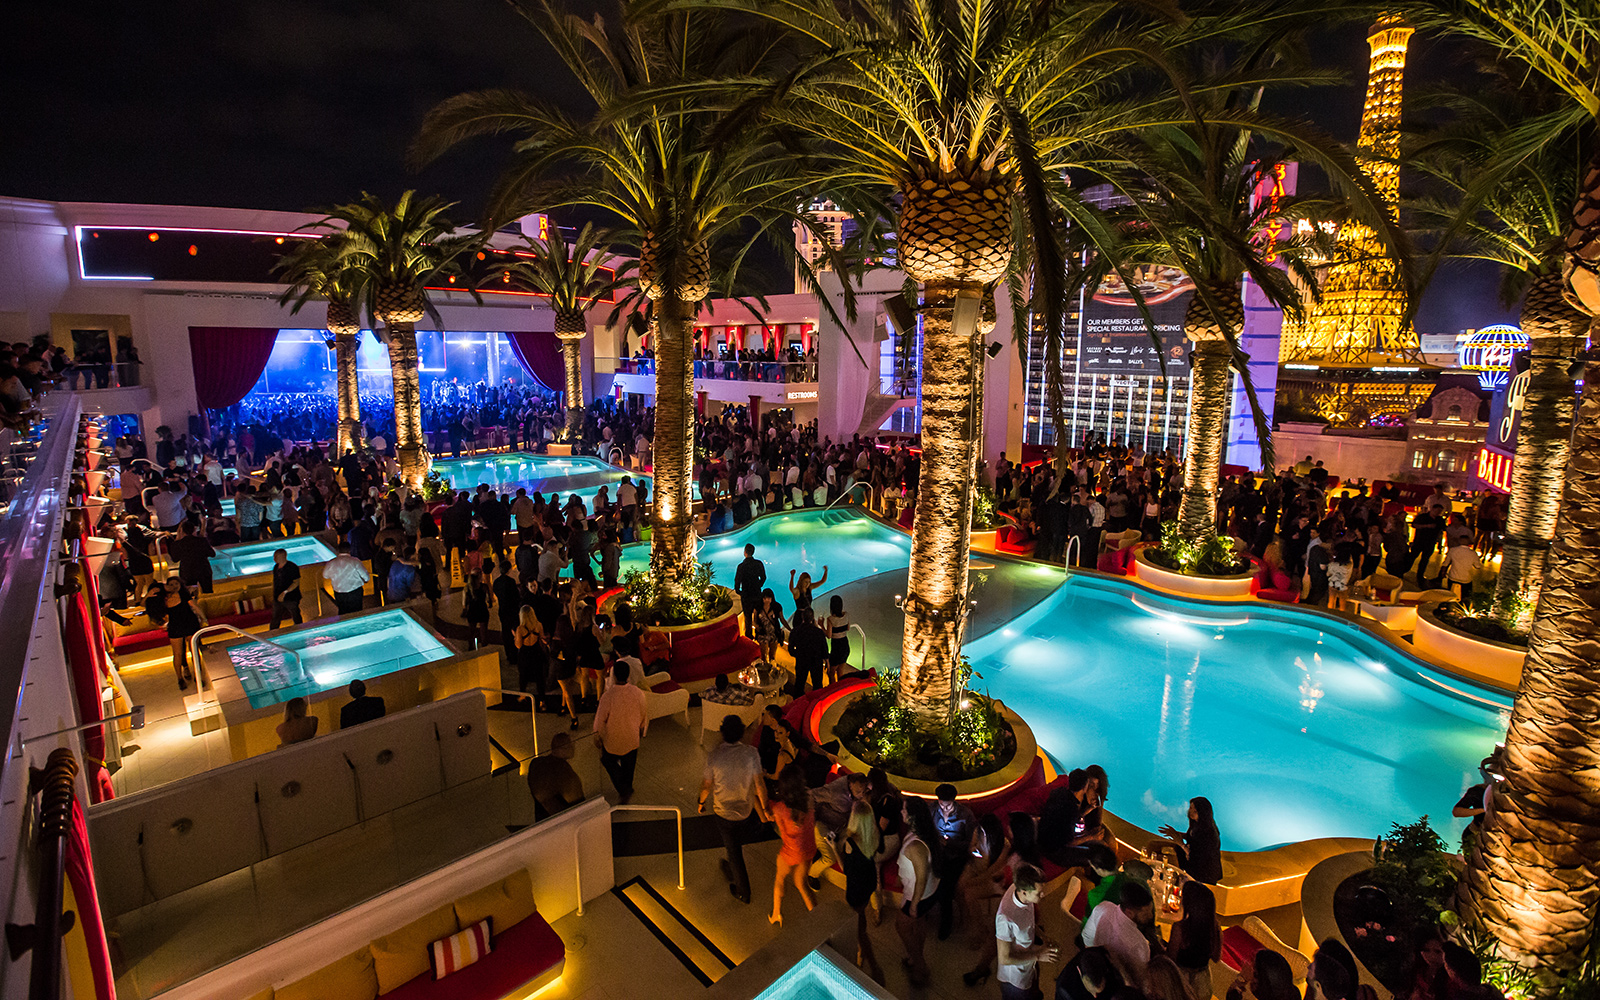 America's Best Cities for Singles: No. 6 Las Vegas